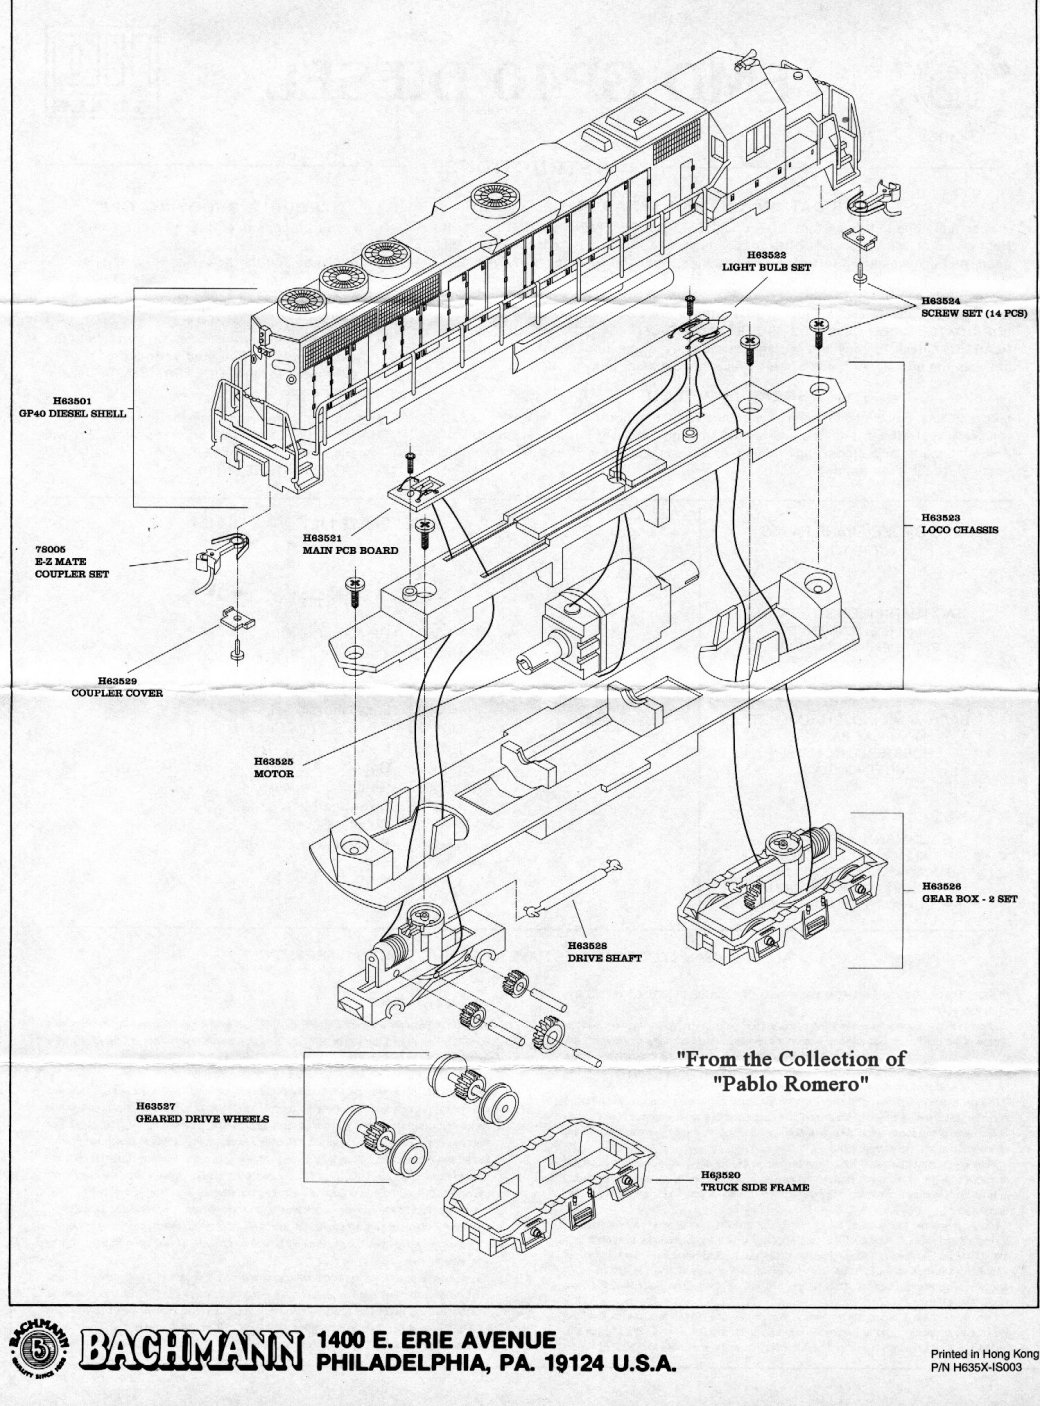 New York Central Train Layout Shop Bulletin